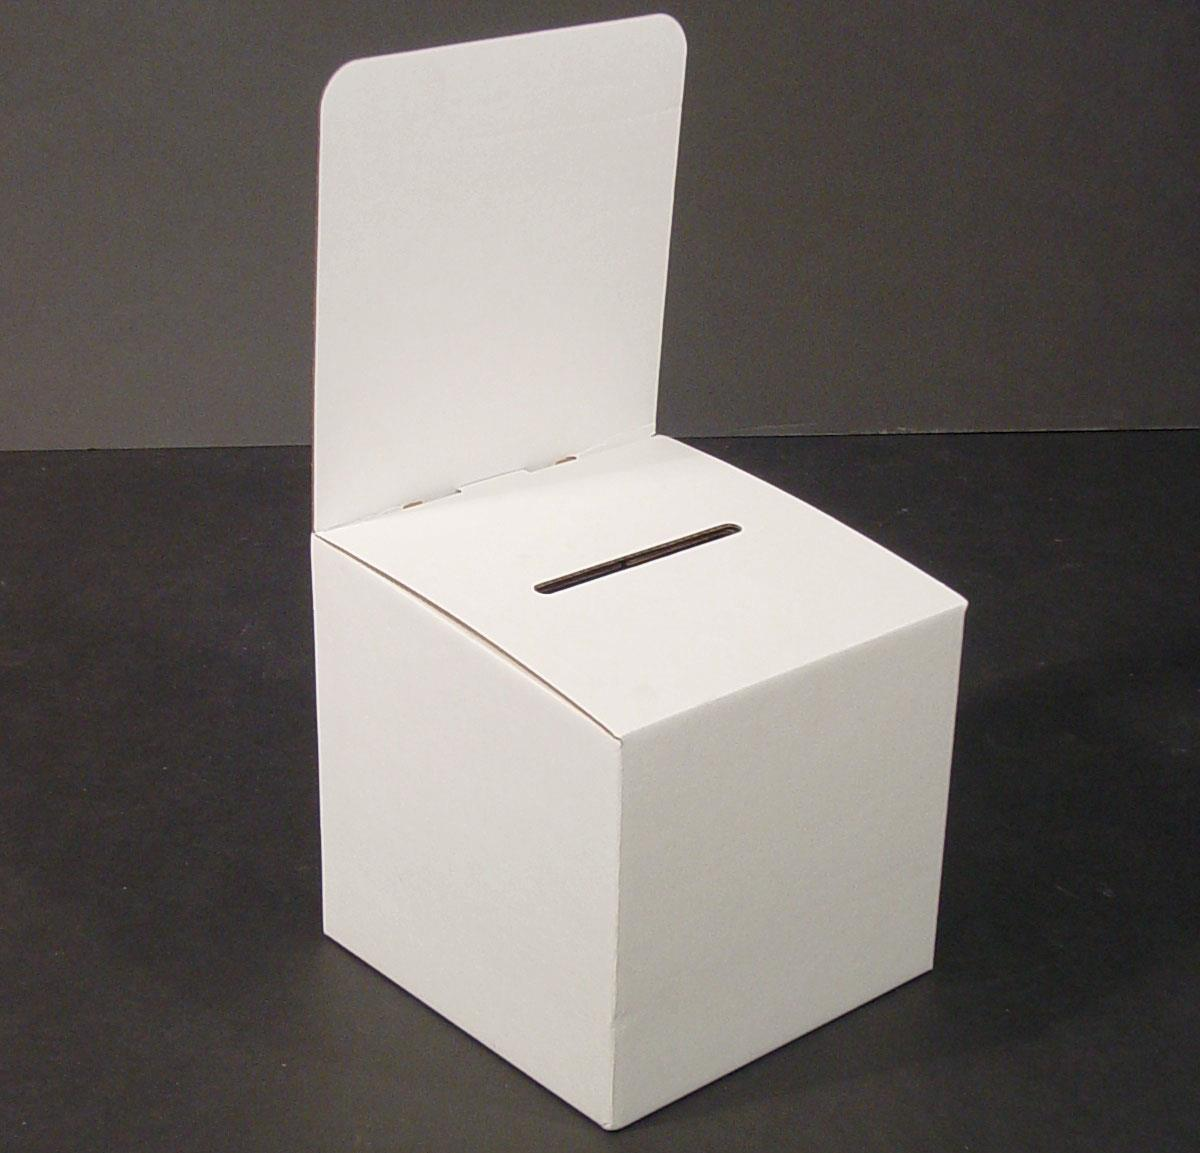 set of 10, large suggestion box with removable header, cardboard